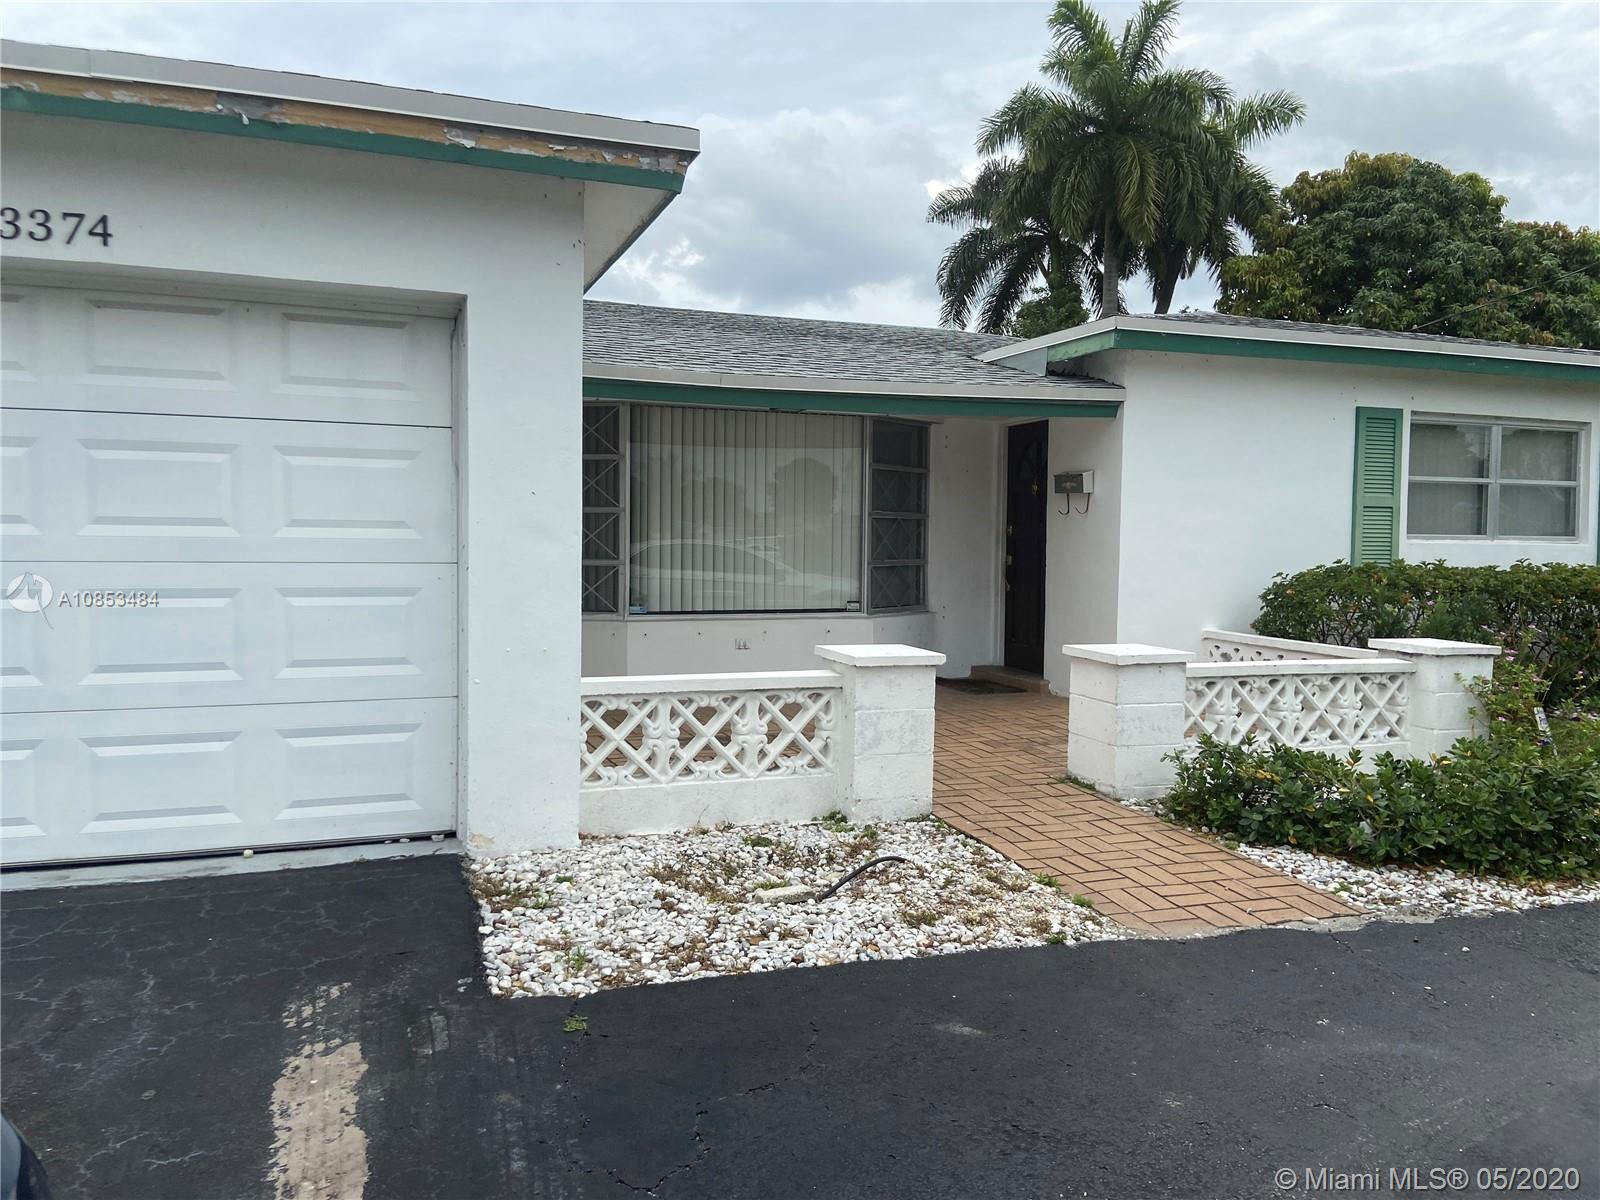 3374 NW 33rd Ave, Lauderdale Lakes, Florida 33309, 3 Bedrooms Bedrooms, ,2 BathroomsBathrooms,Residential,For Sale,3374 NW 33rd Ave,A10853484